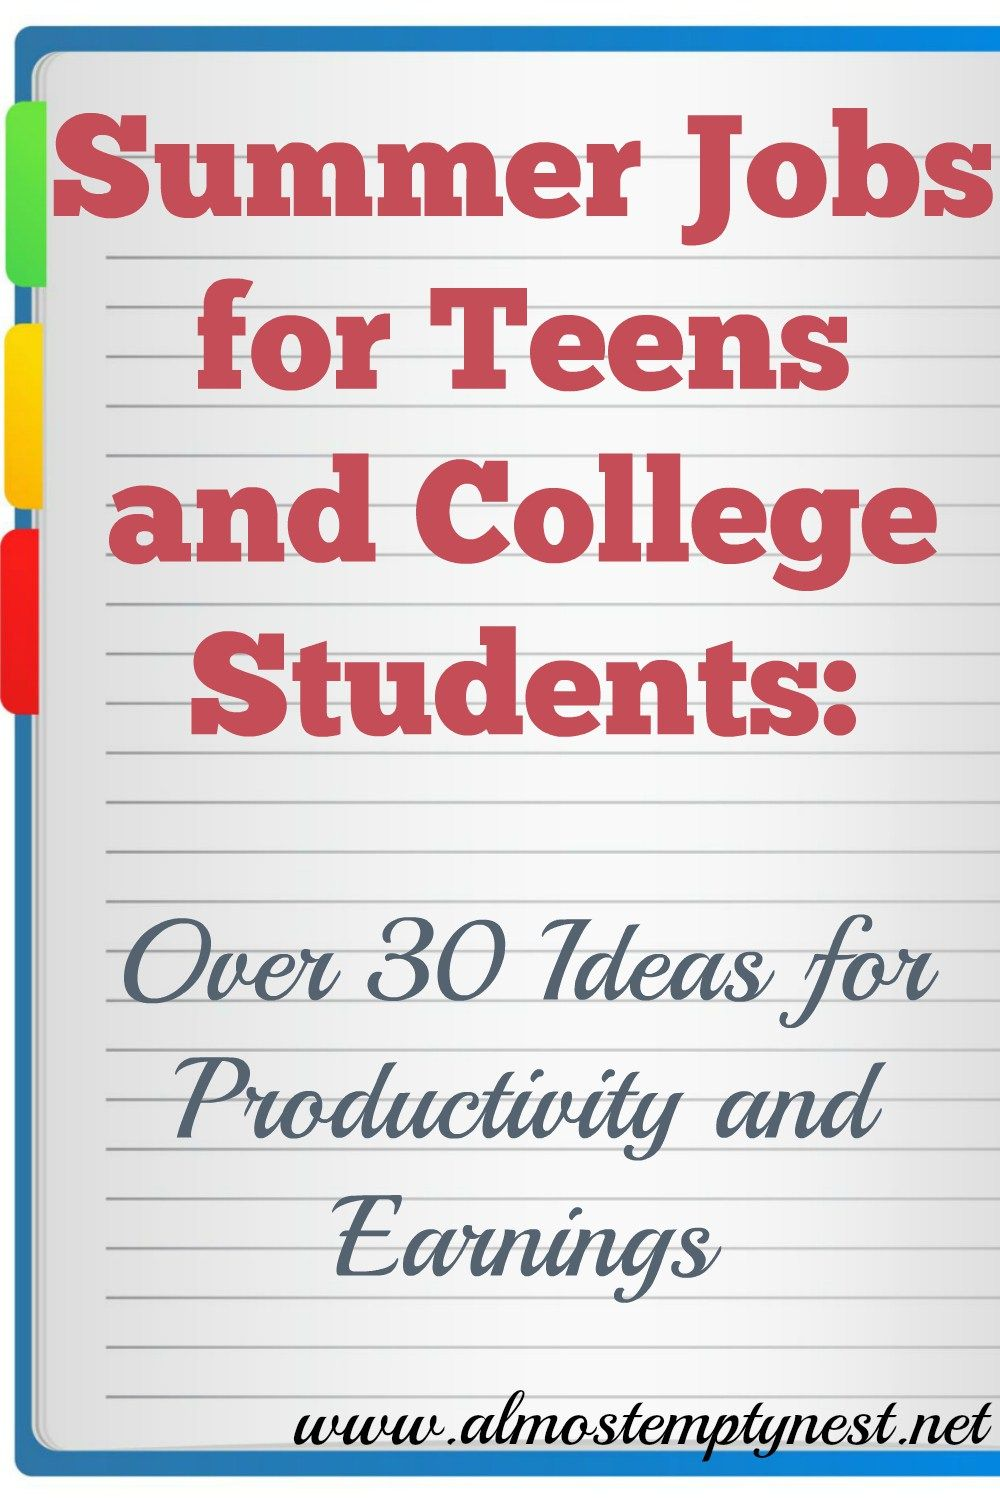 Summer Jobs For Teens And College Students Over 30 Ideas For